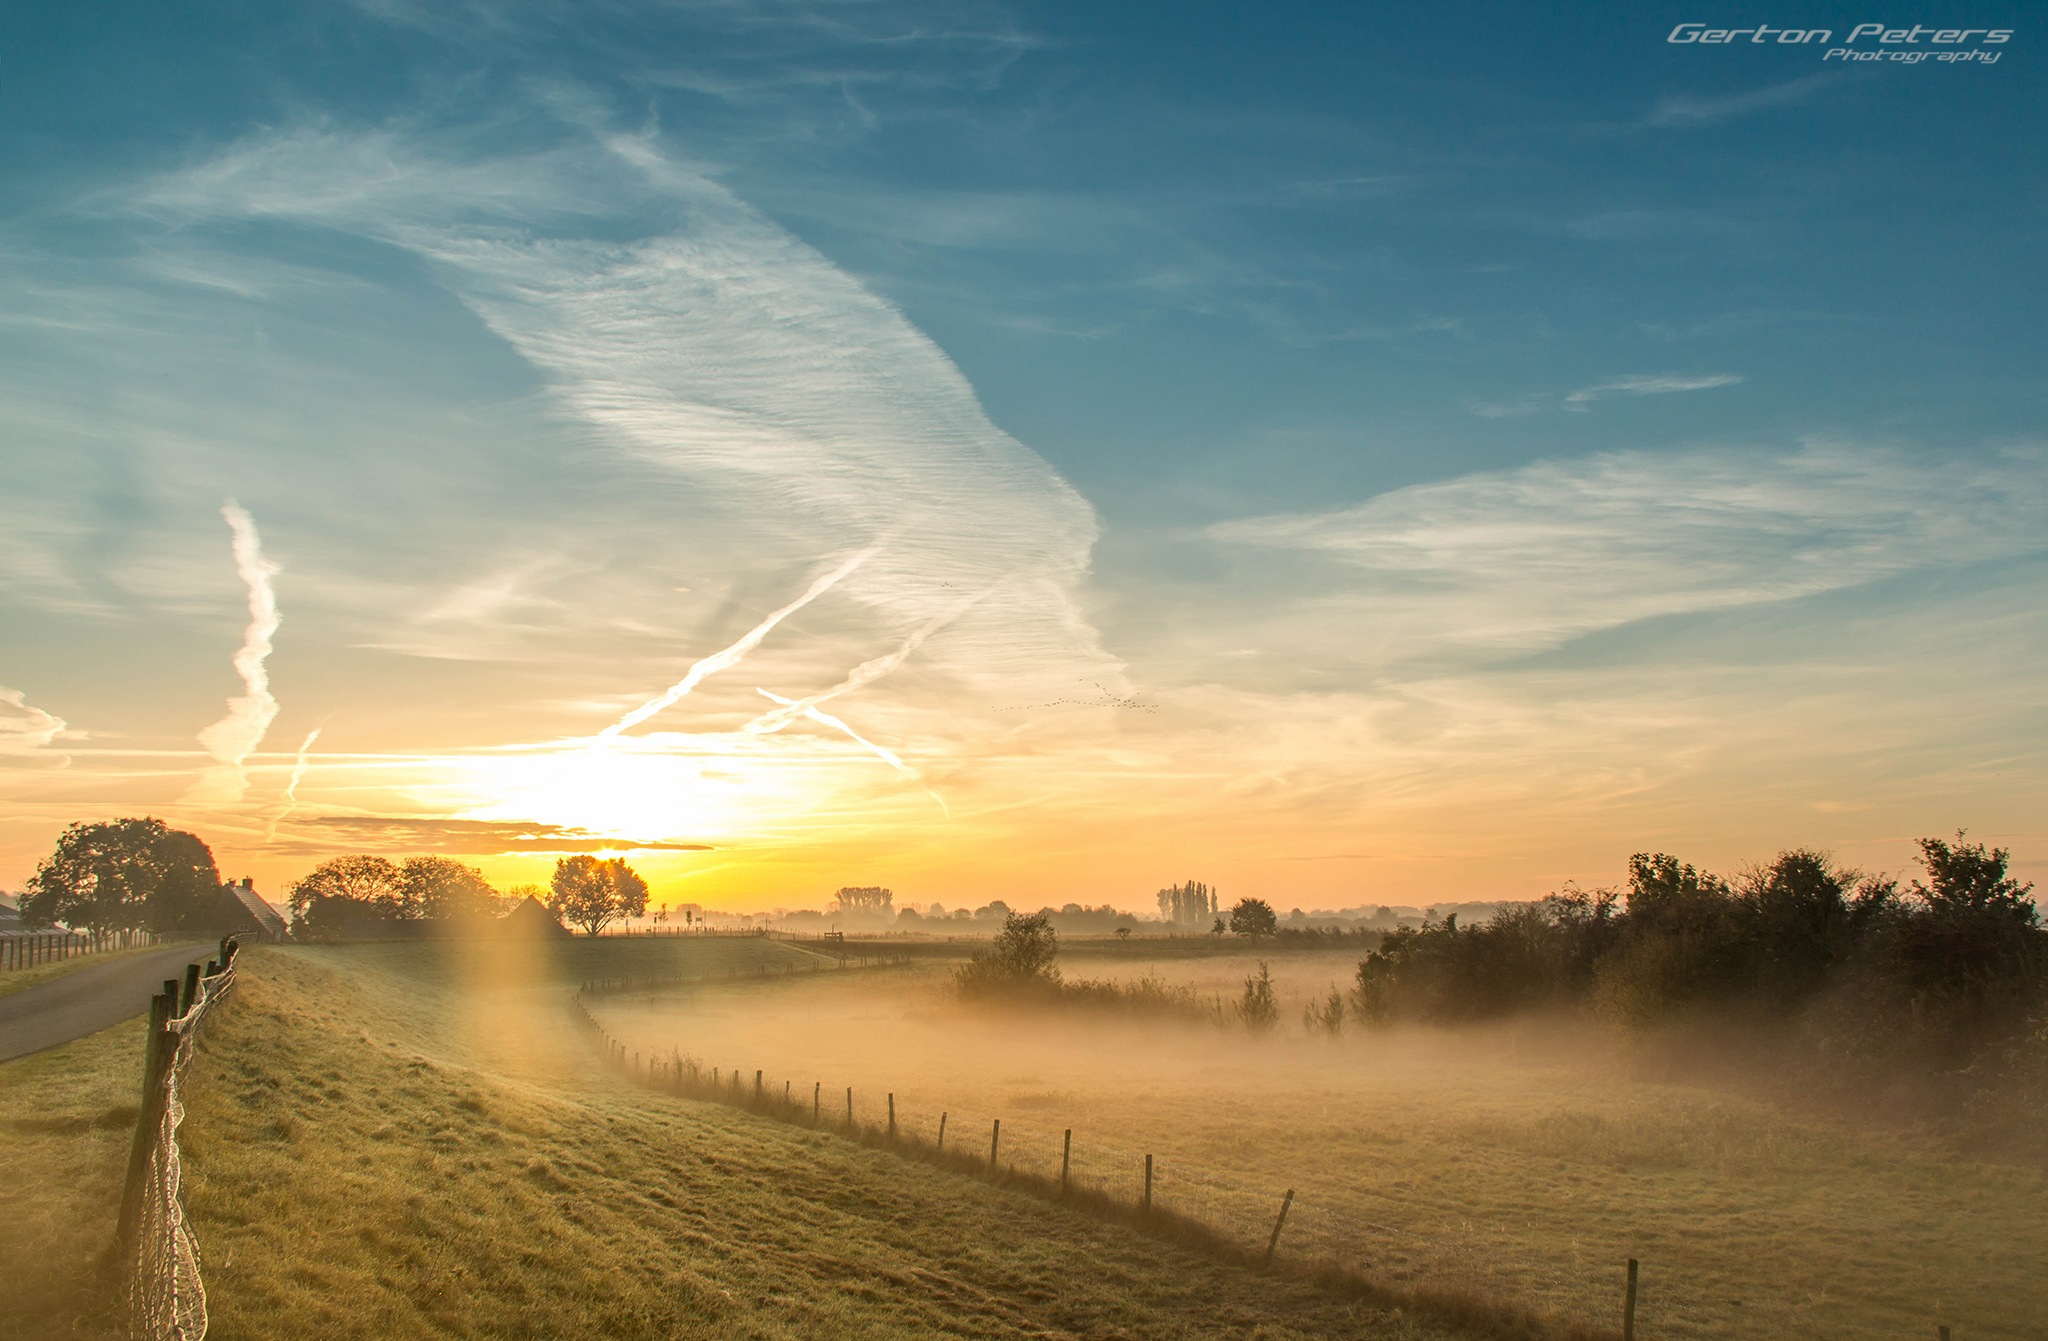 Morning glory by Gerton Peters